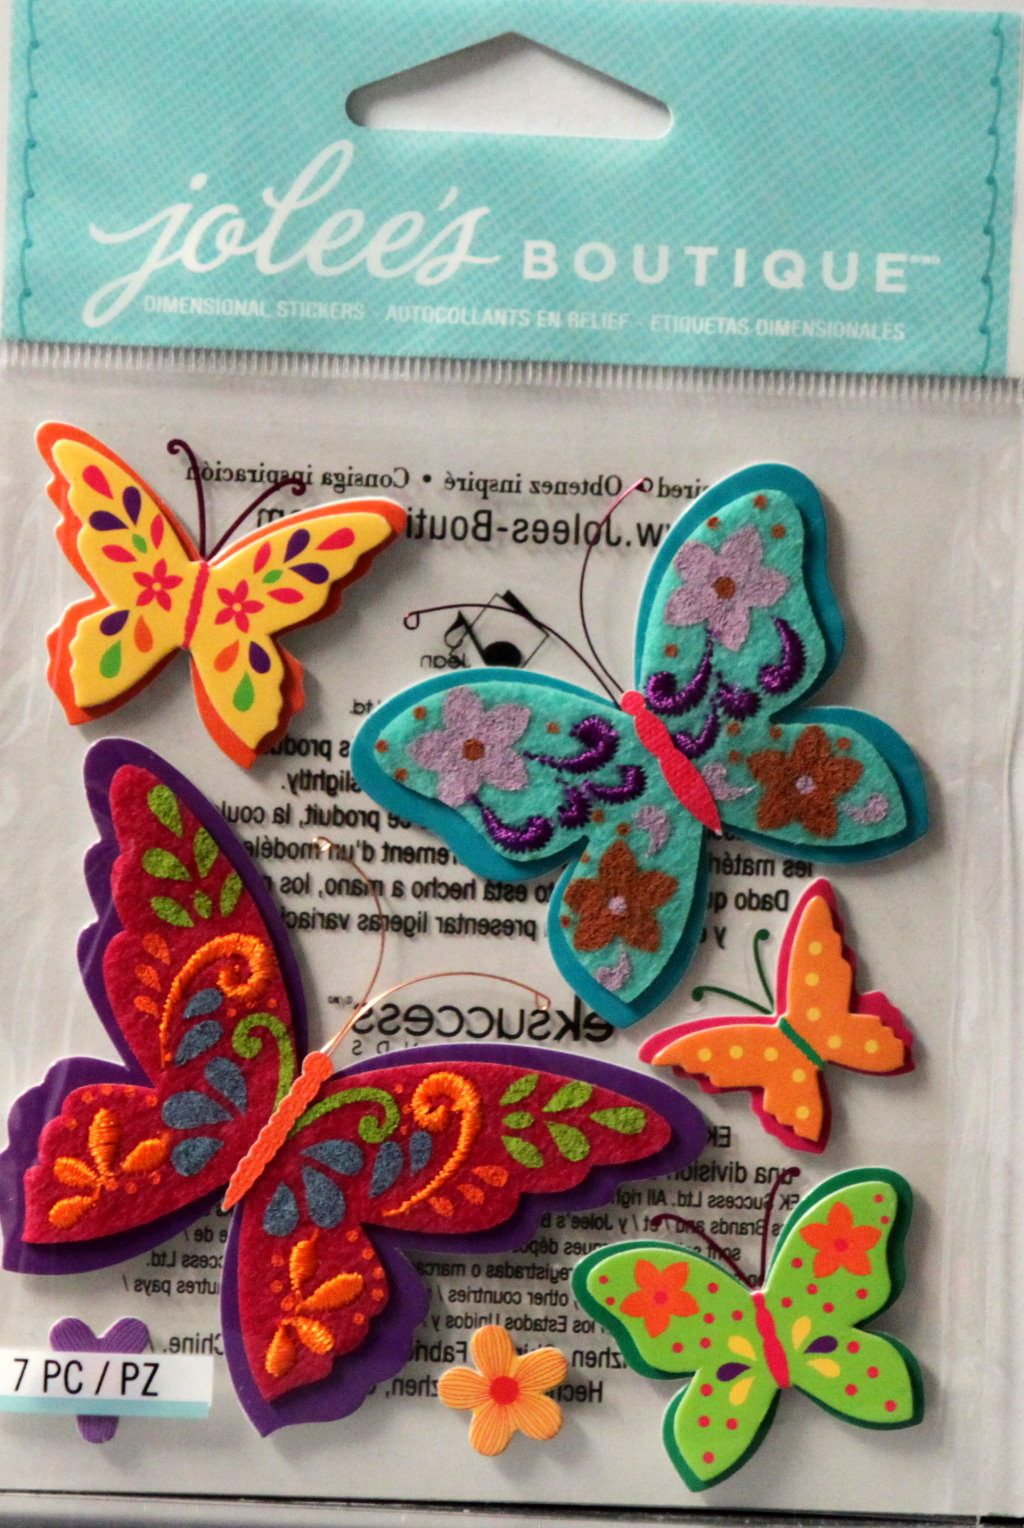 Jolee's Boutique Colorful Butterflies Embellishment Stickers